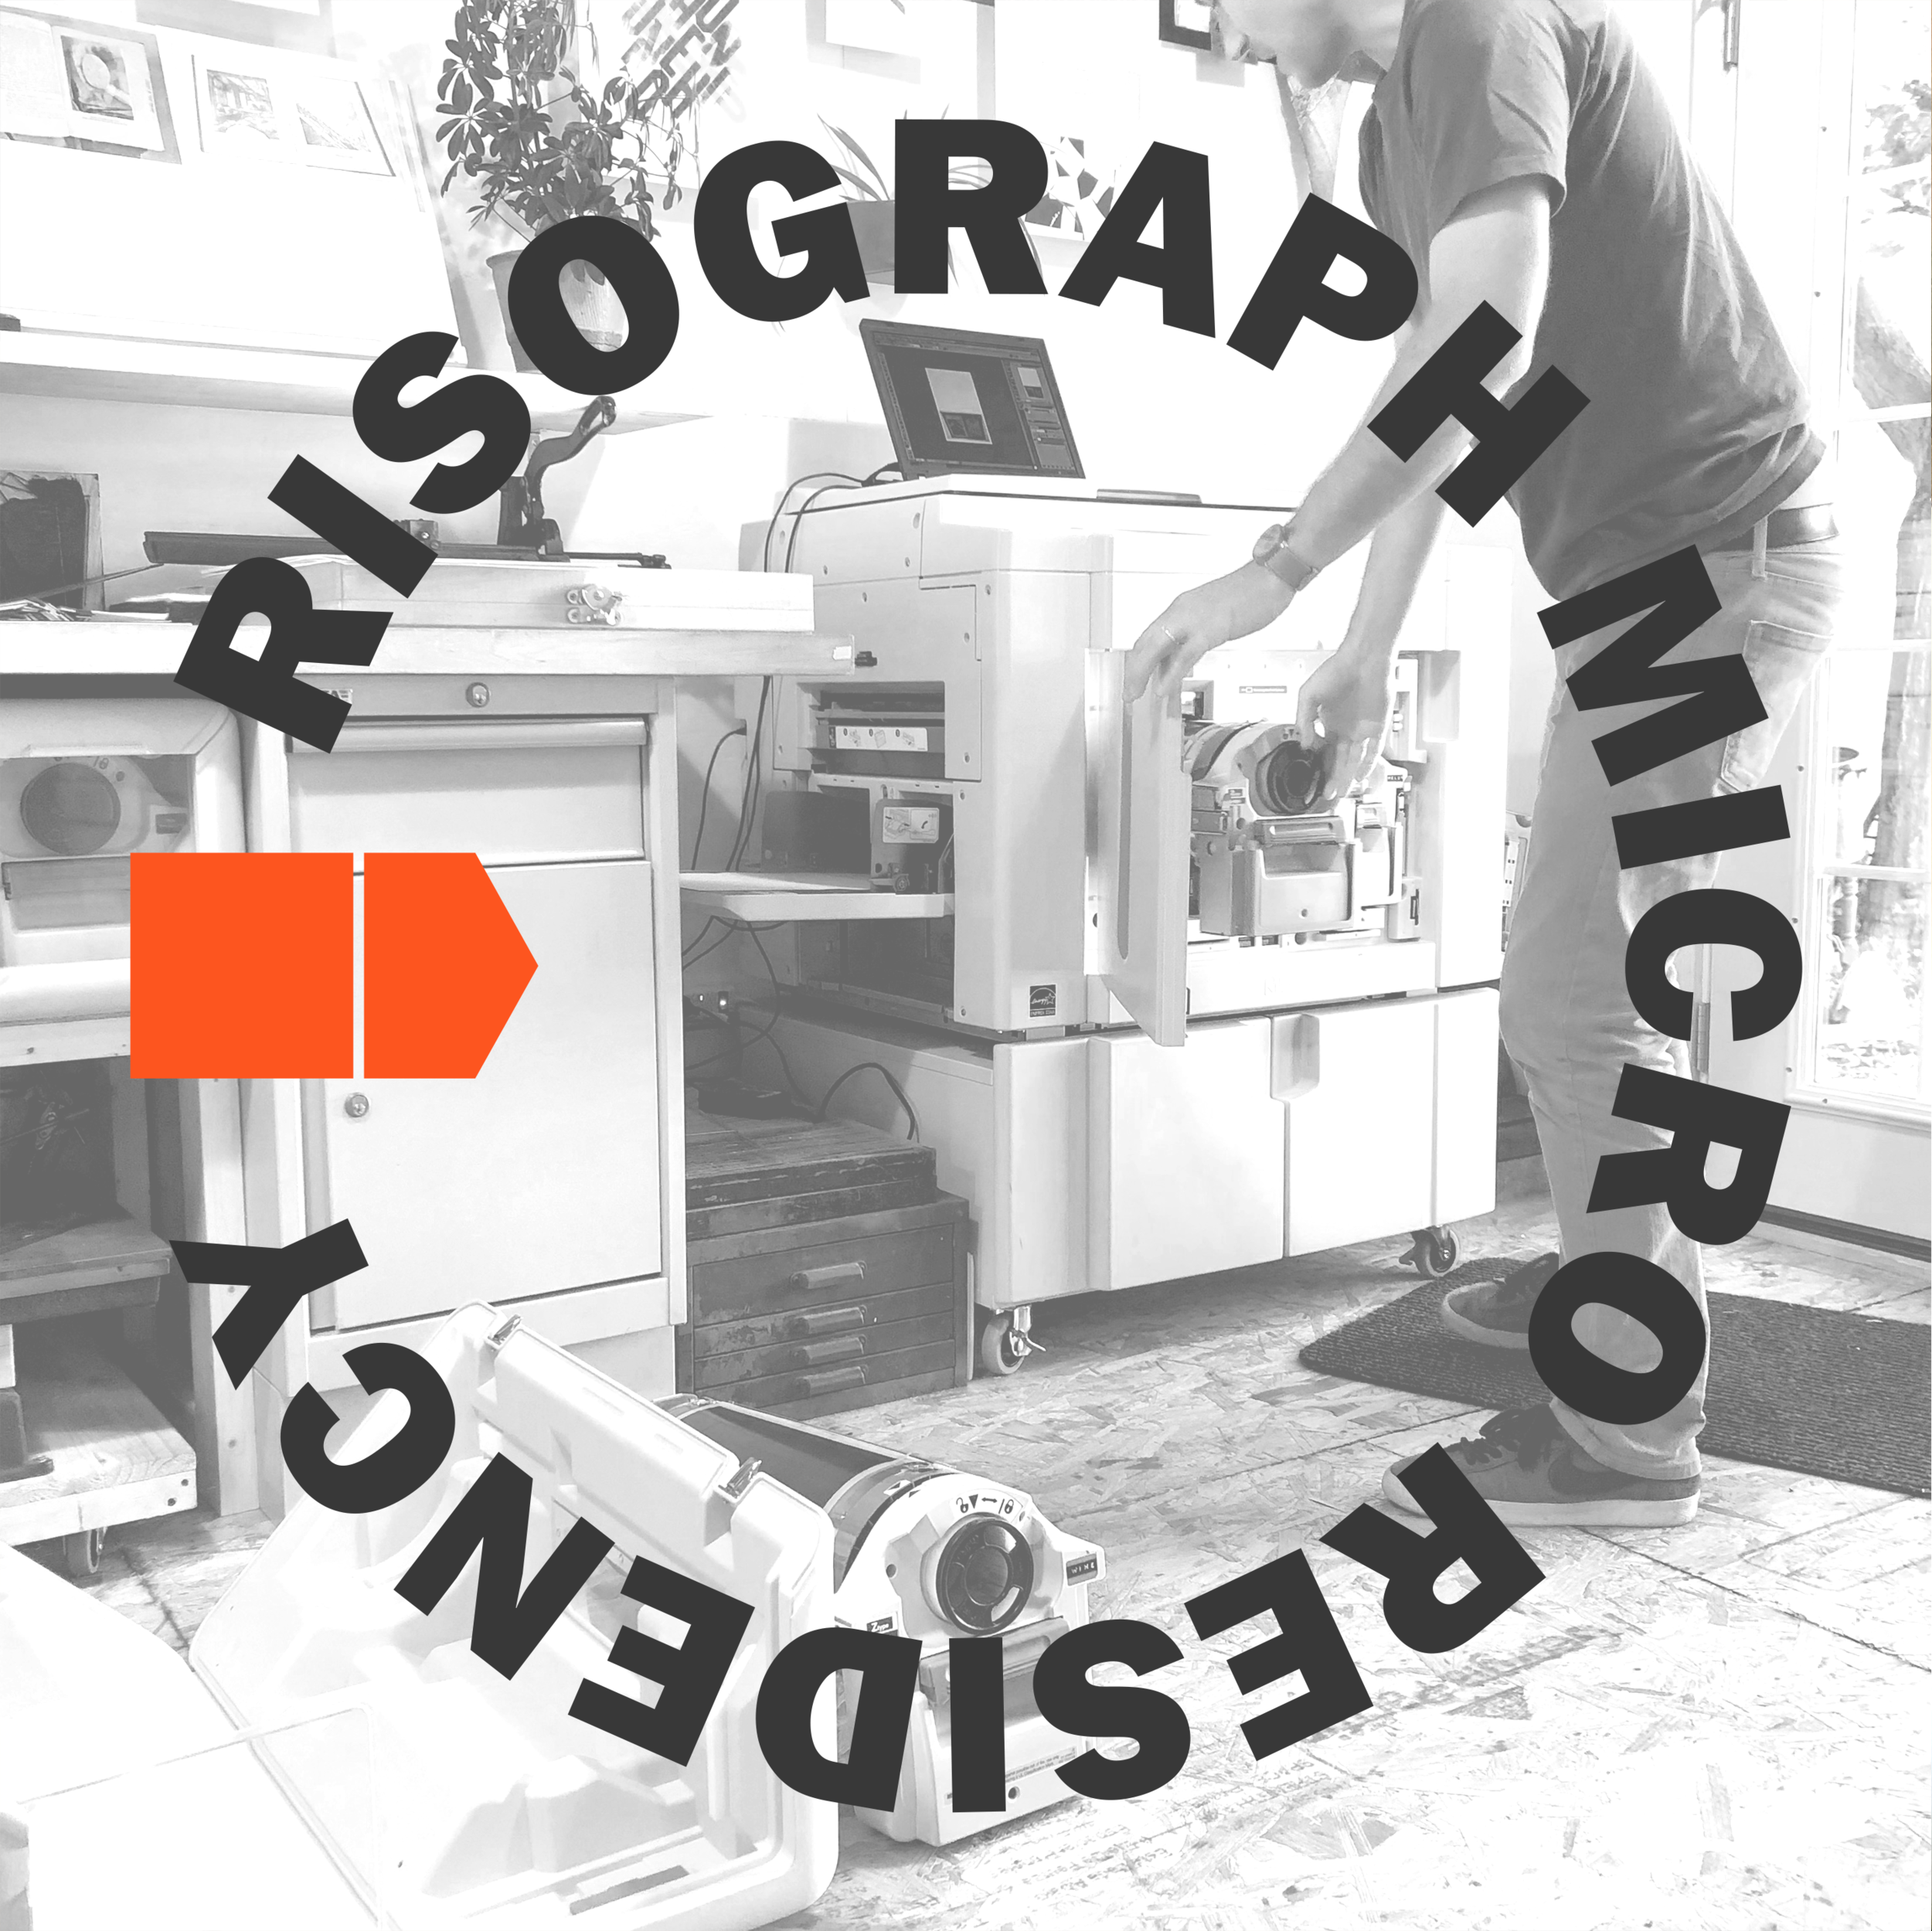 Our first resident artists,    Jason Urban    and    Leslie Mutchler    of    JULMstudios   , produced four editions of 3-color risograph prints in early August 2019.